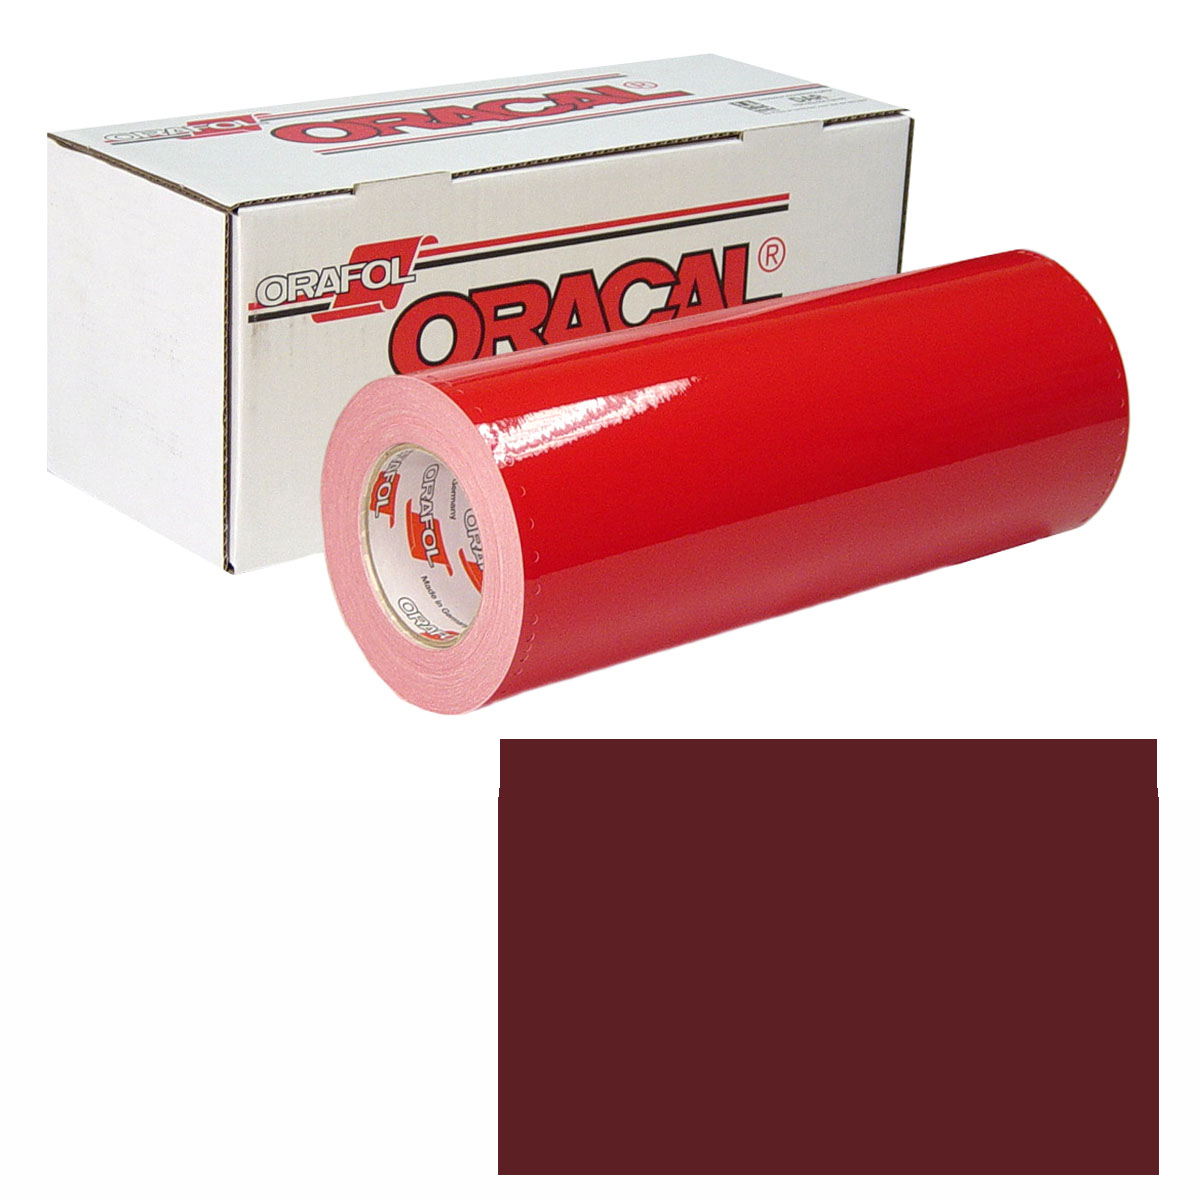 ORACAL 951M Unp 24In X 50Yd 369 Red Brown